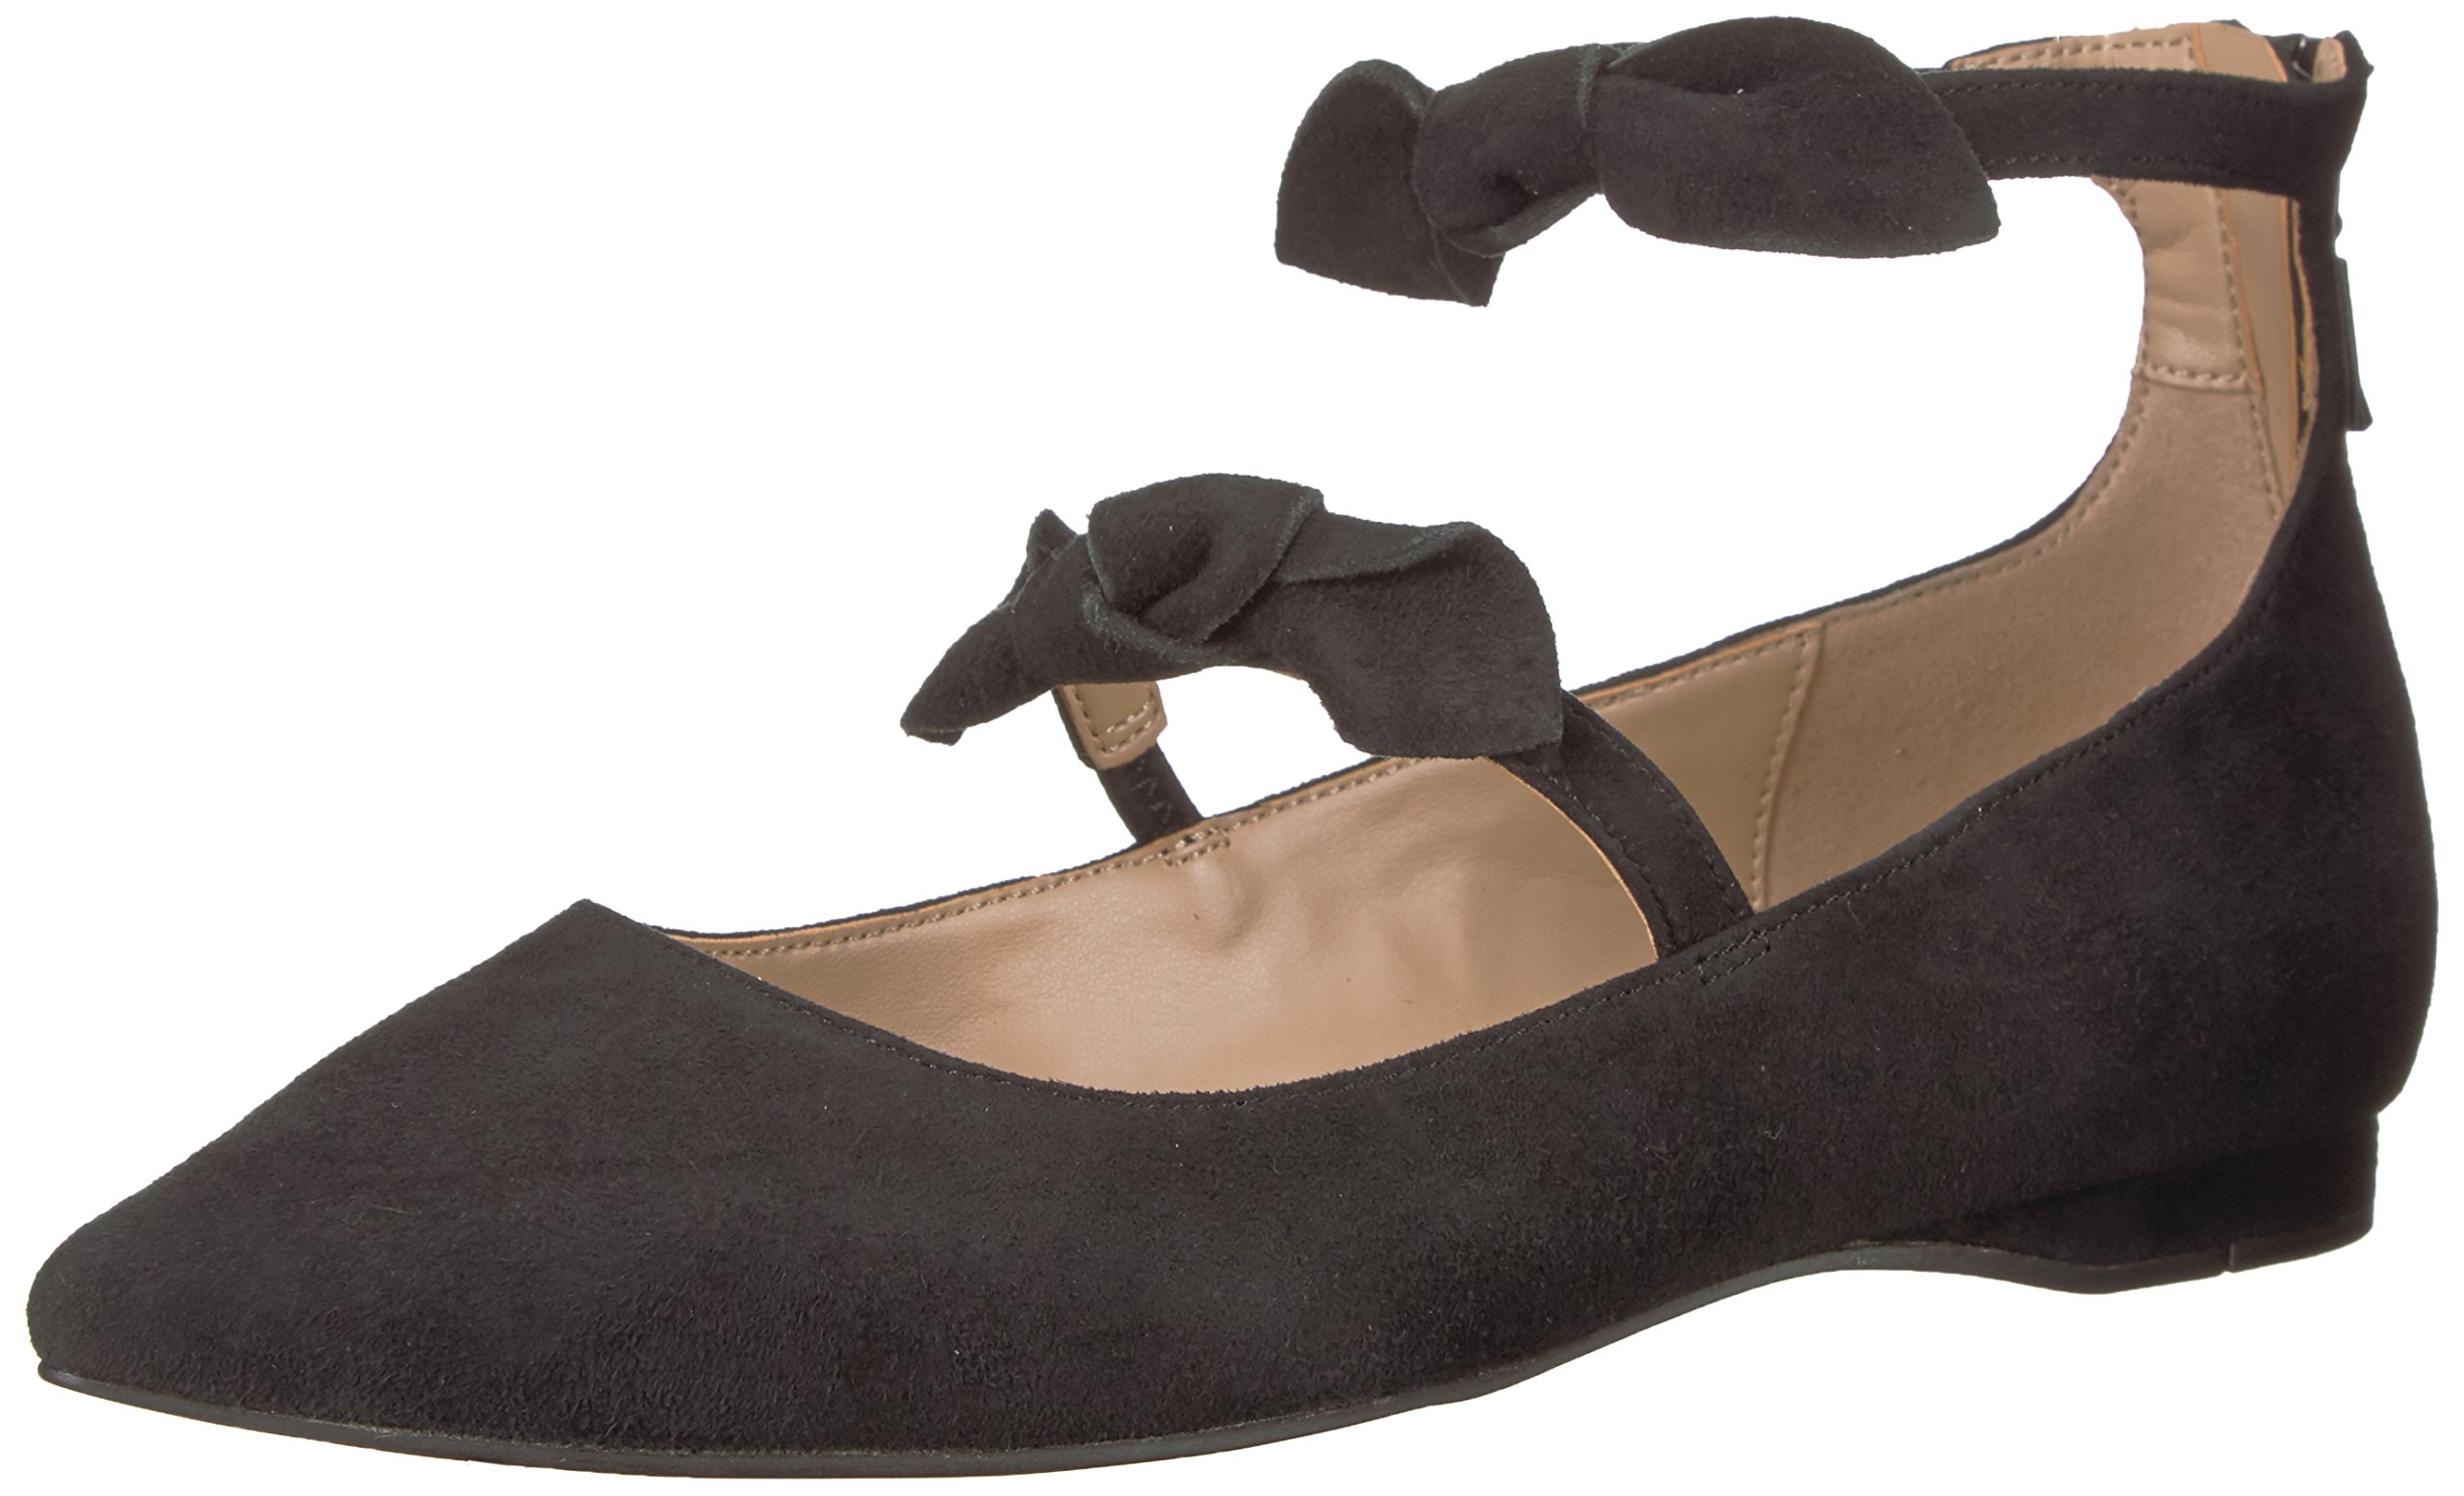 The Fix Women's Emilia Double Bow Pointed-Toe Flat, Black, 7 B US